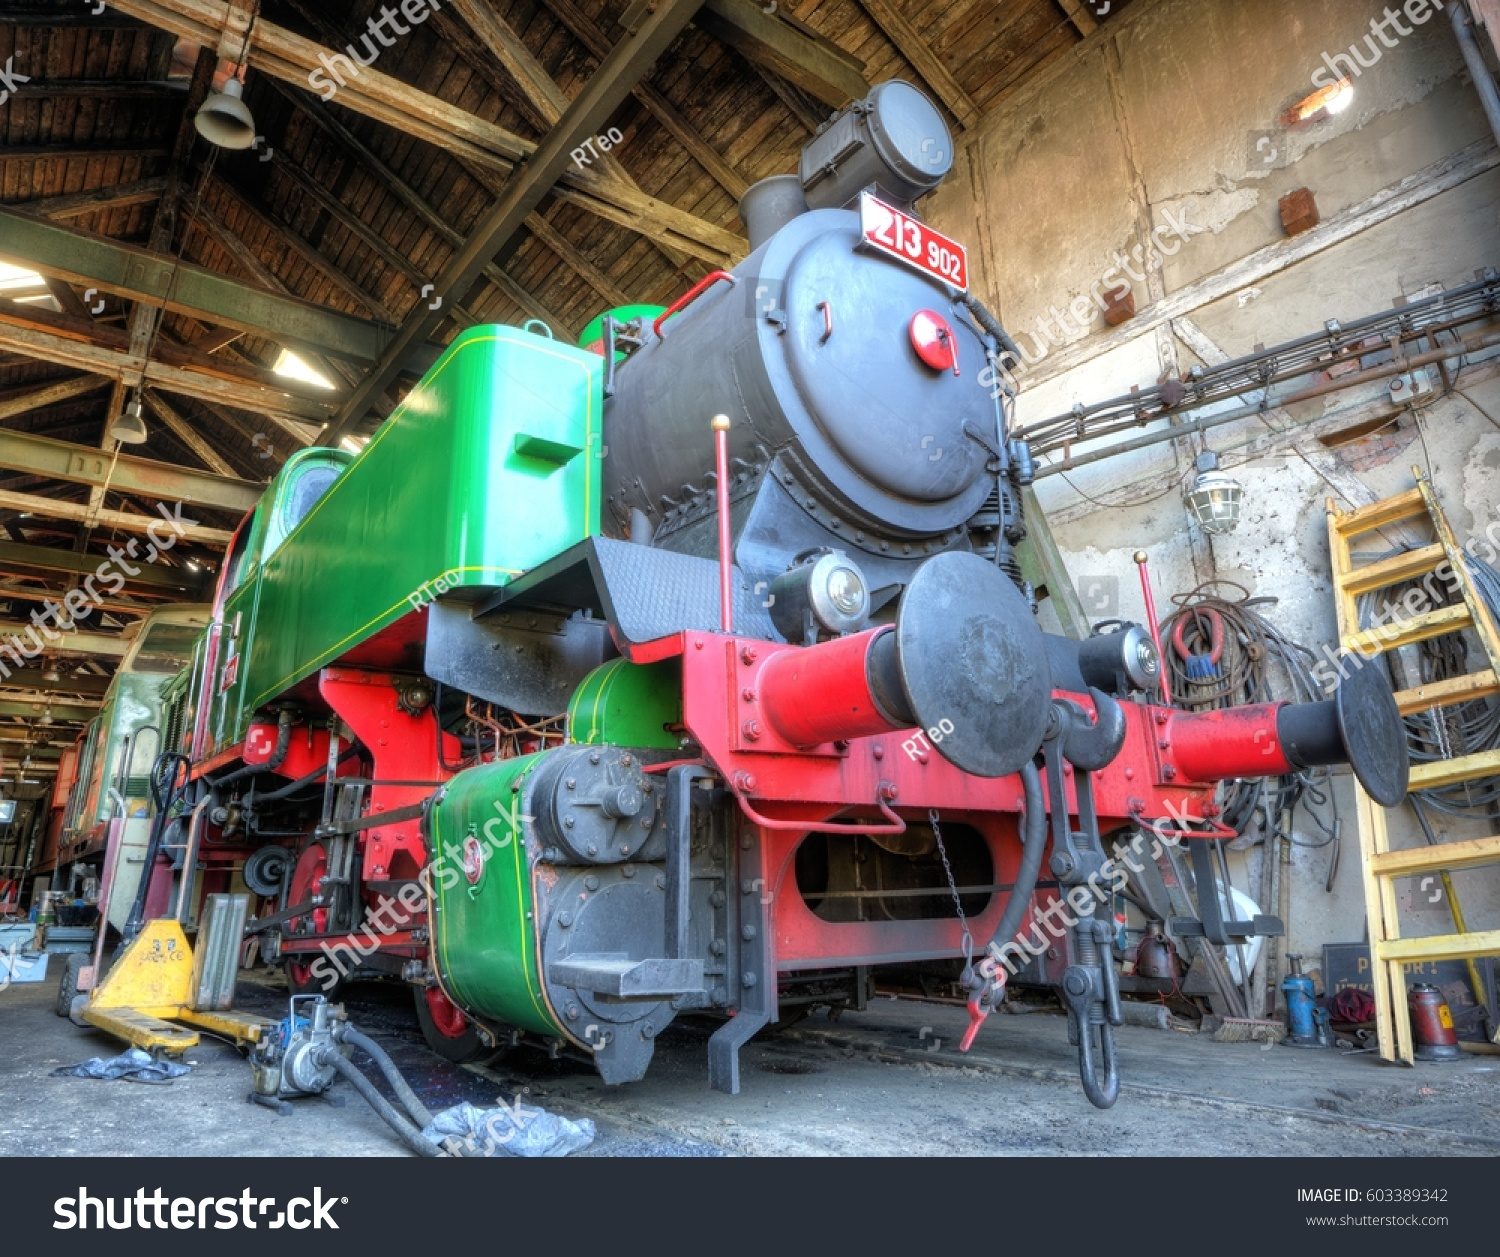 Steam Locomotive 213902 Year Manufacture 1947 Stock Photo (Royalty ...